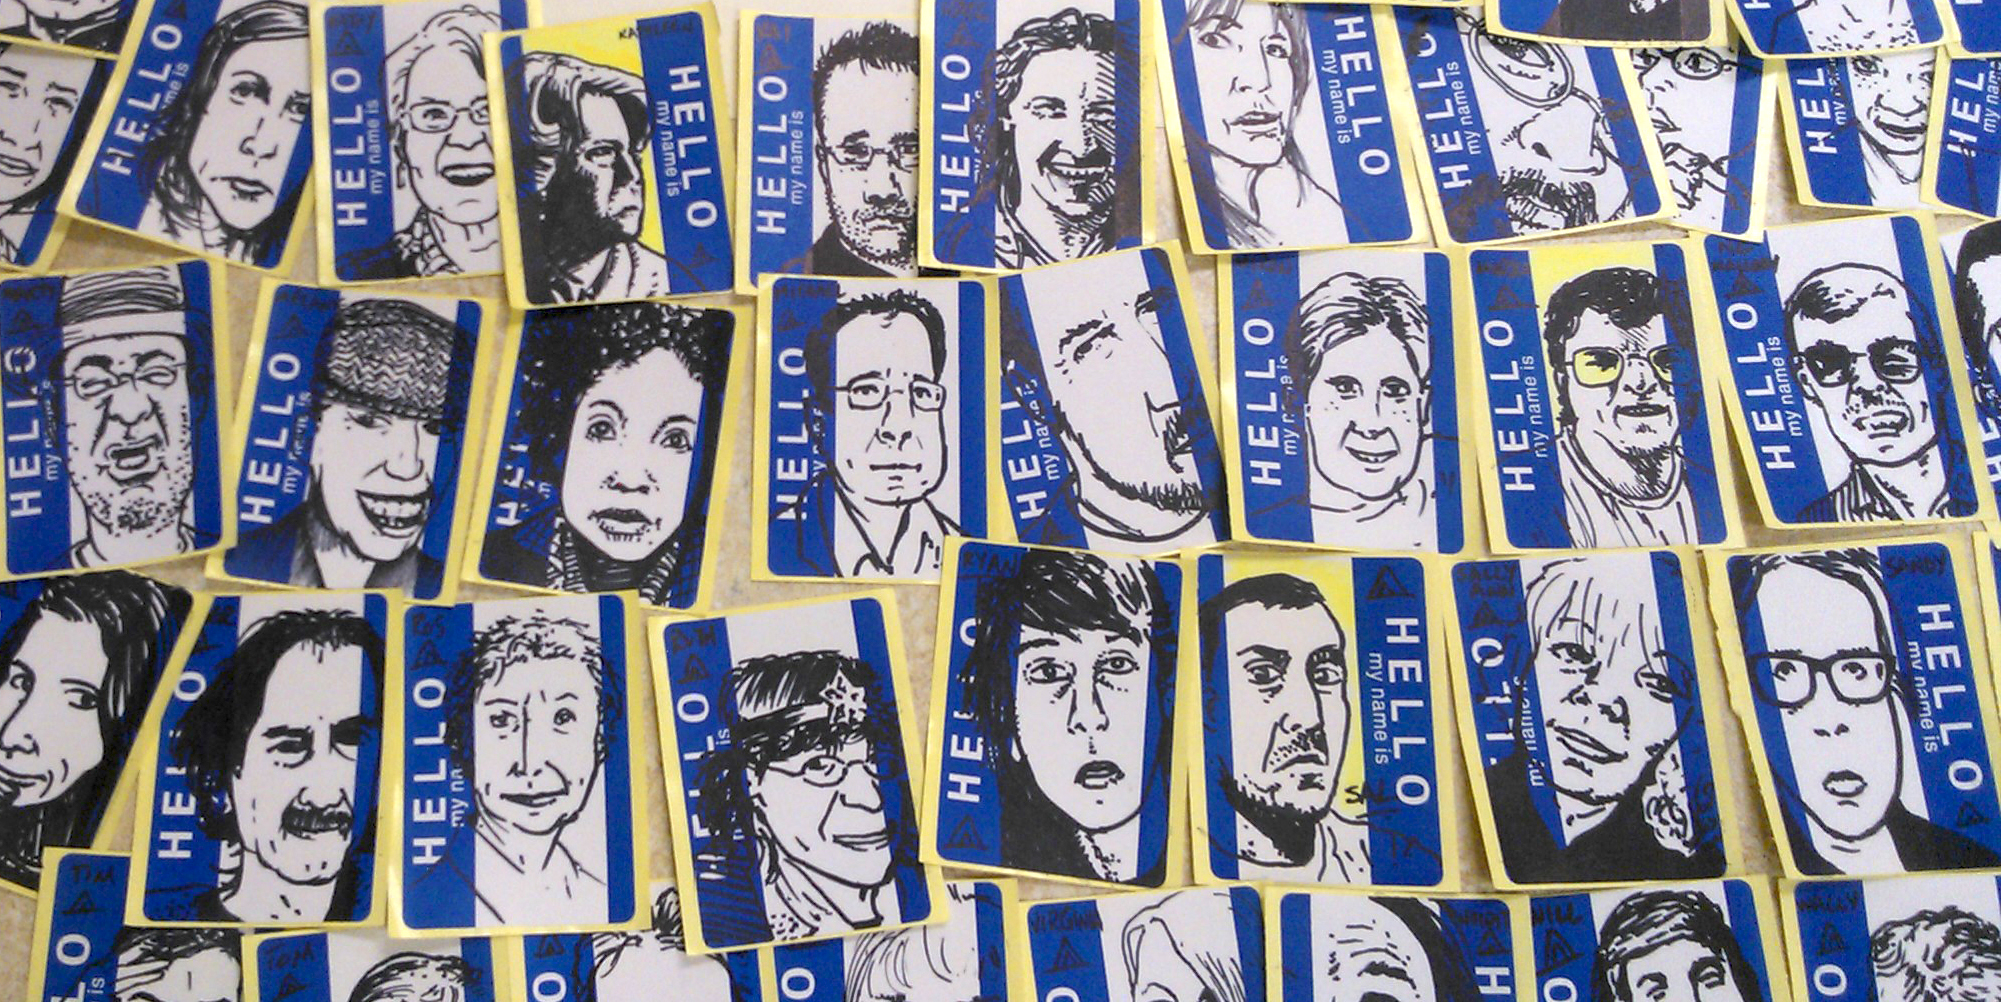 artwork by andres musta, faces drawn on name tags